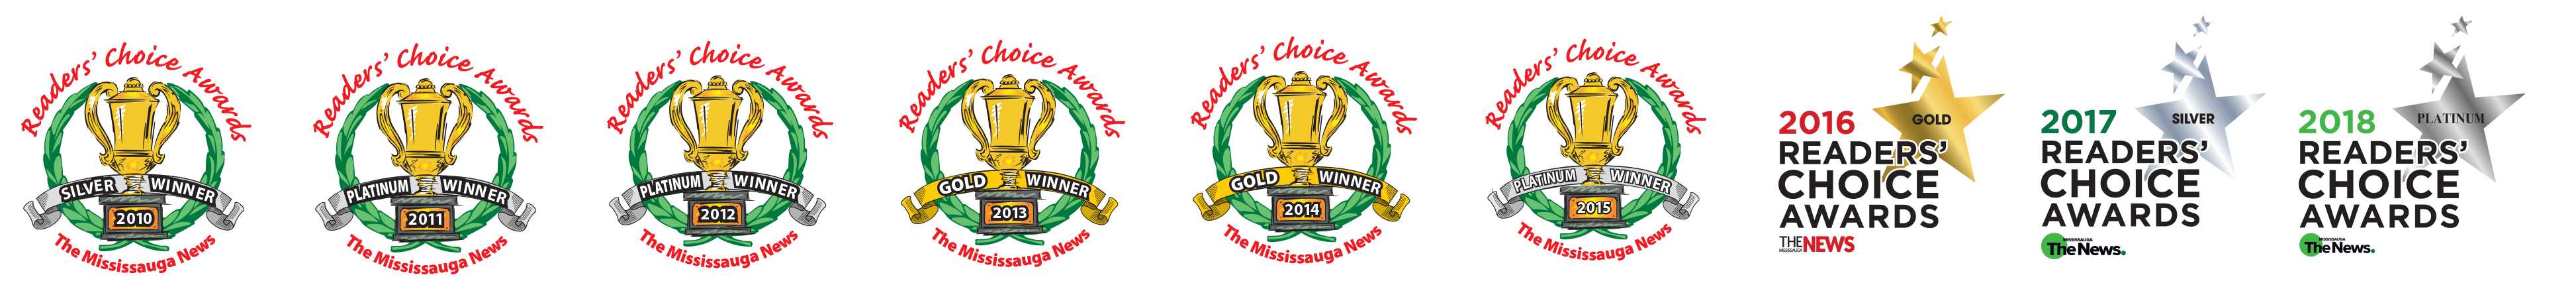 Best of Mississauga Winner logos 2010 to 2018